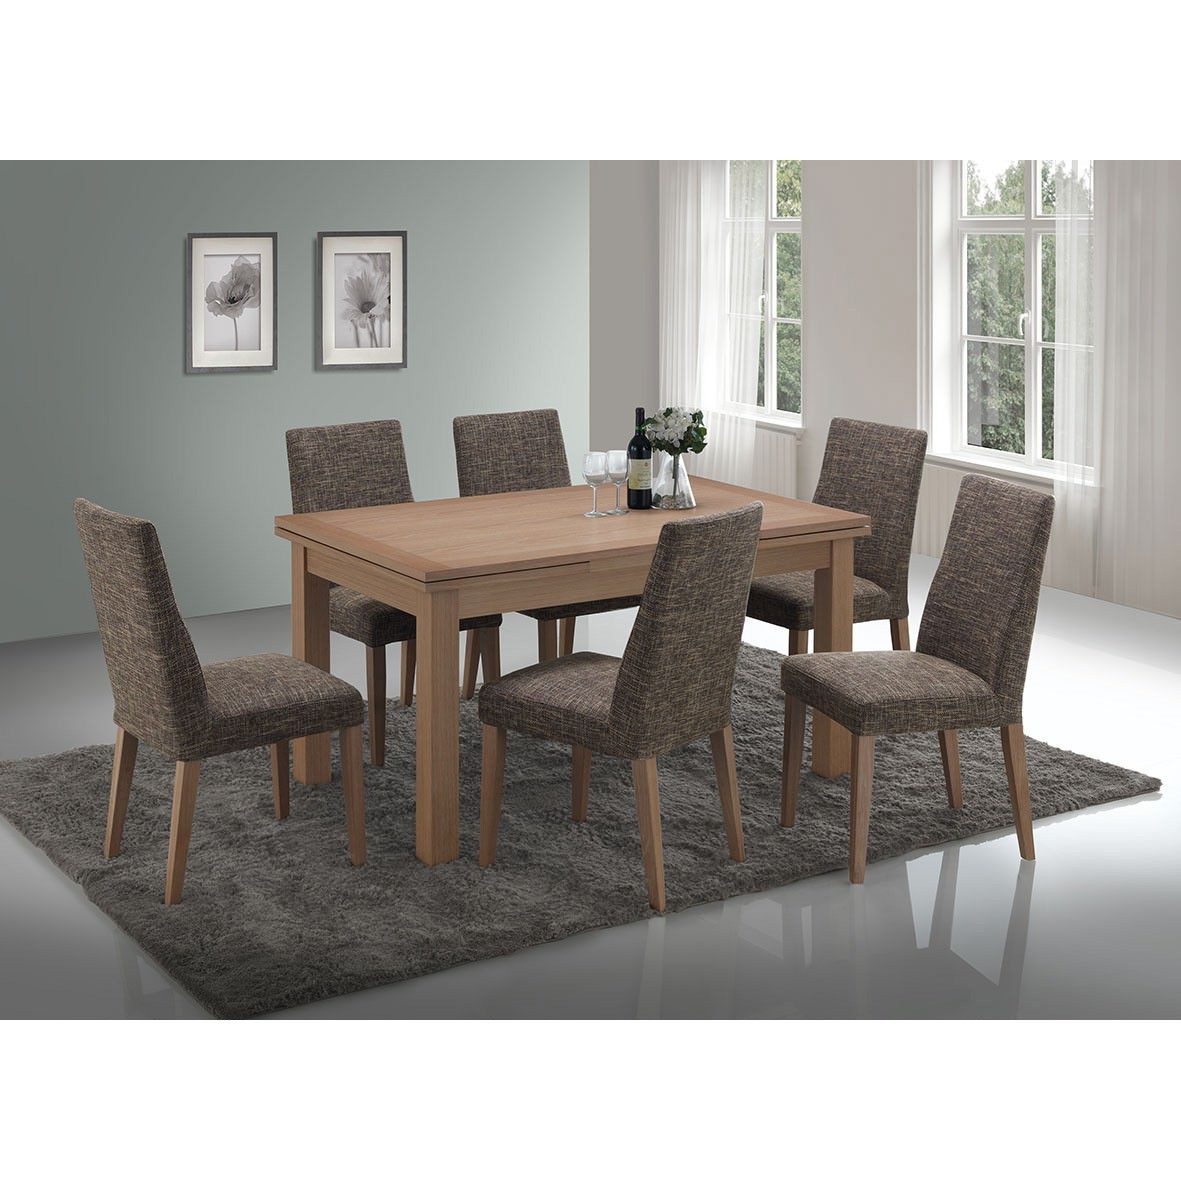 Yaron 7 Piece American Oak Timber Extensible Dining Table ...